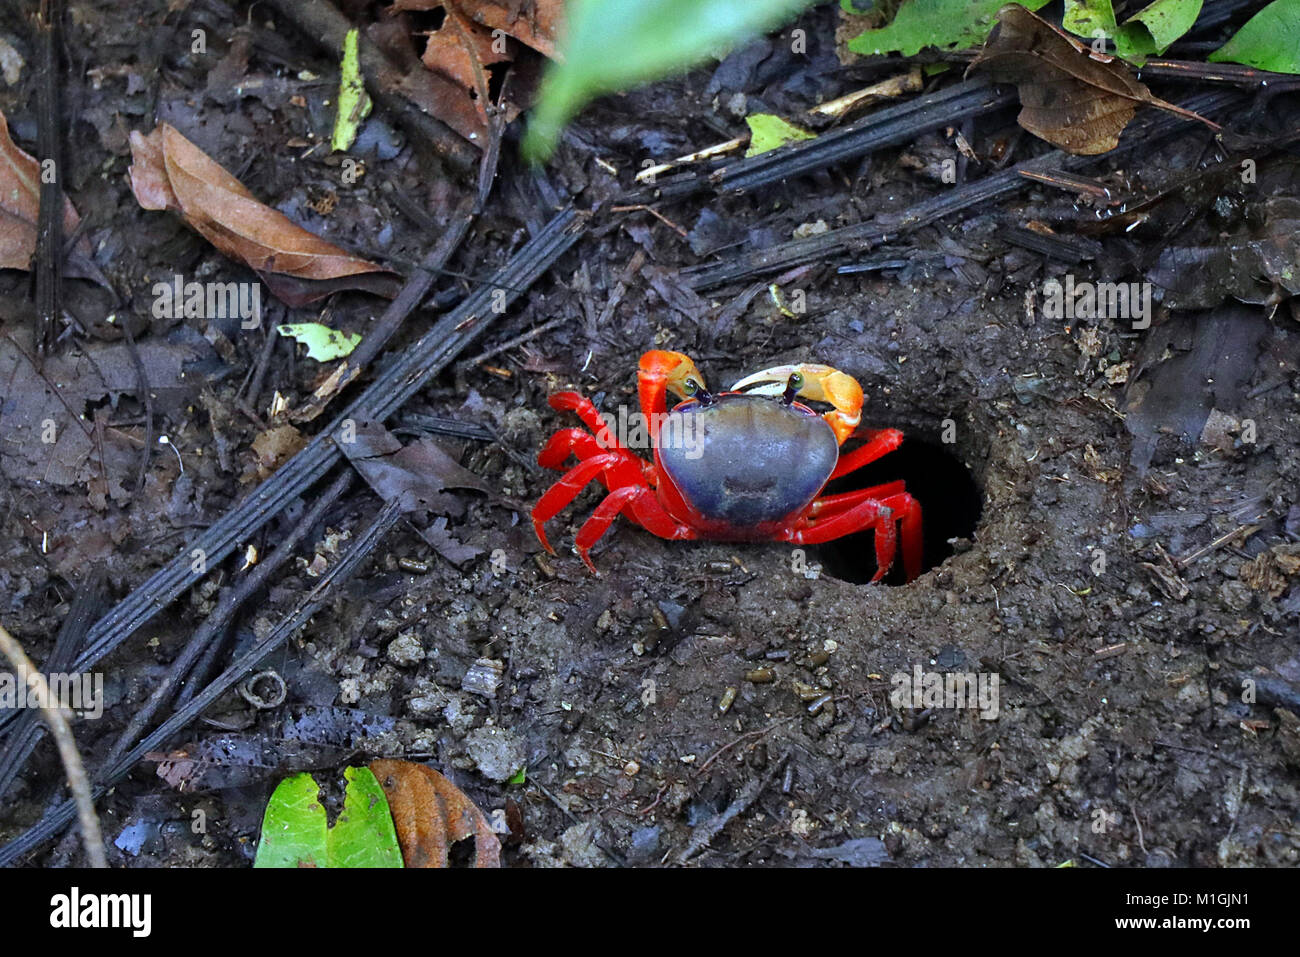 A Pacific Red Land Crab (Gecarcinus quadratus) emerging from a hole in the rainforest floor in the Manuel Antonio - Stock Image